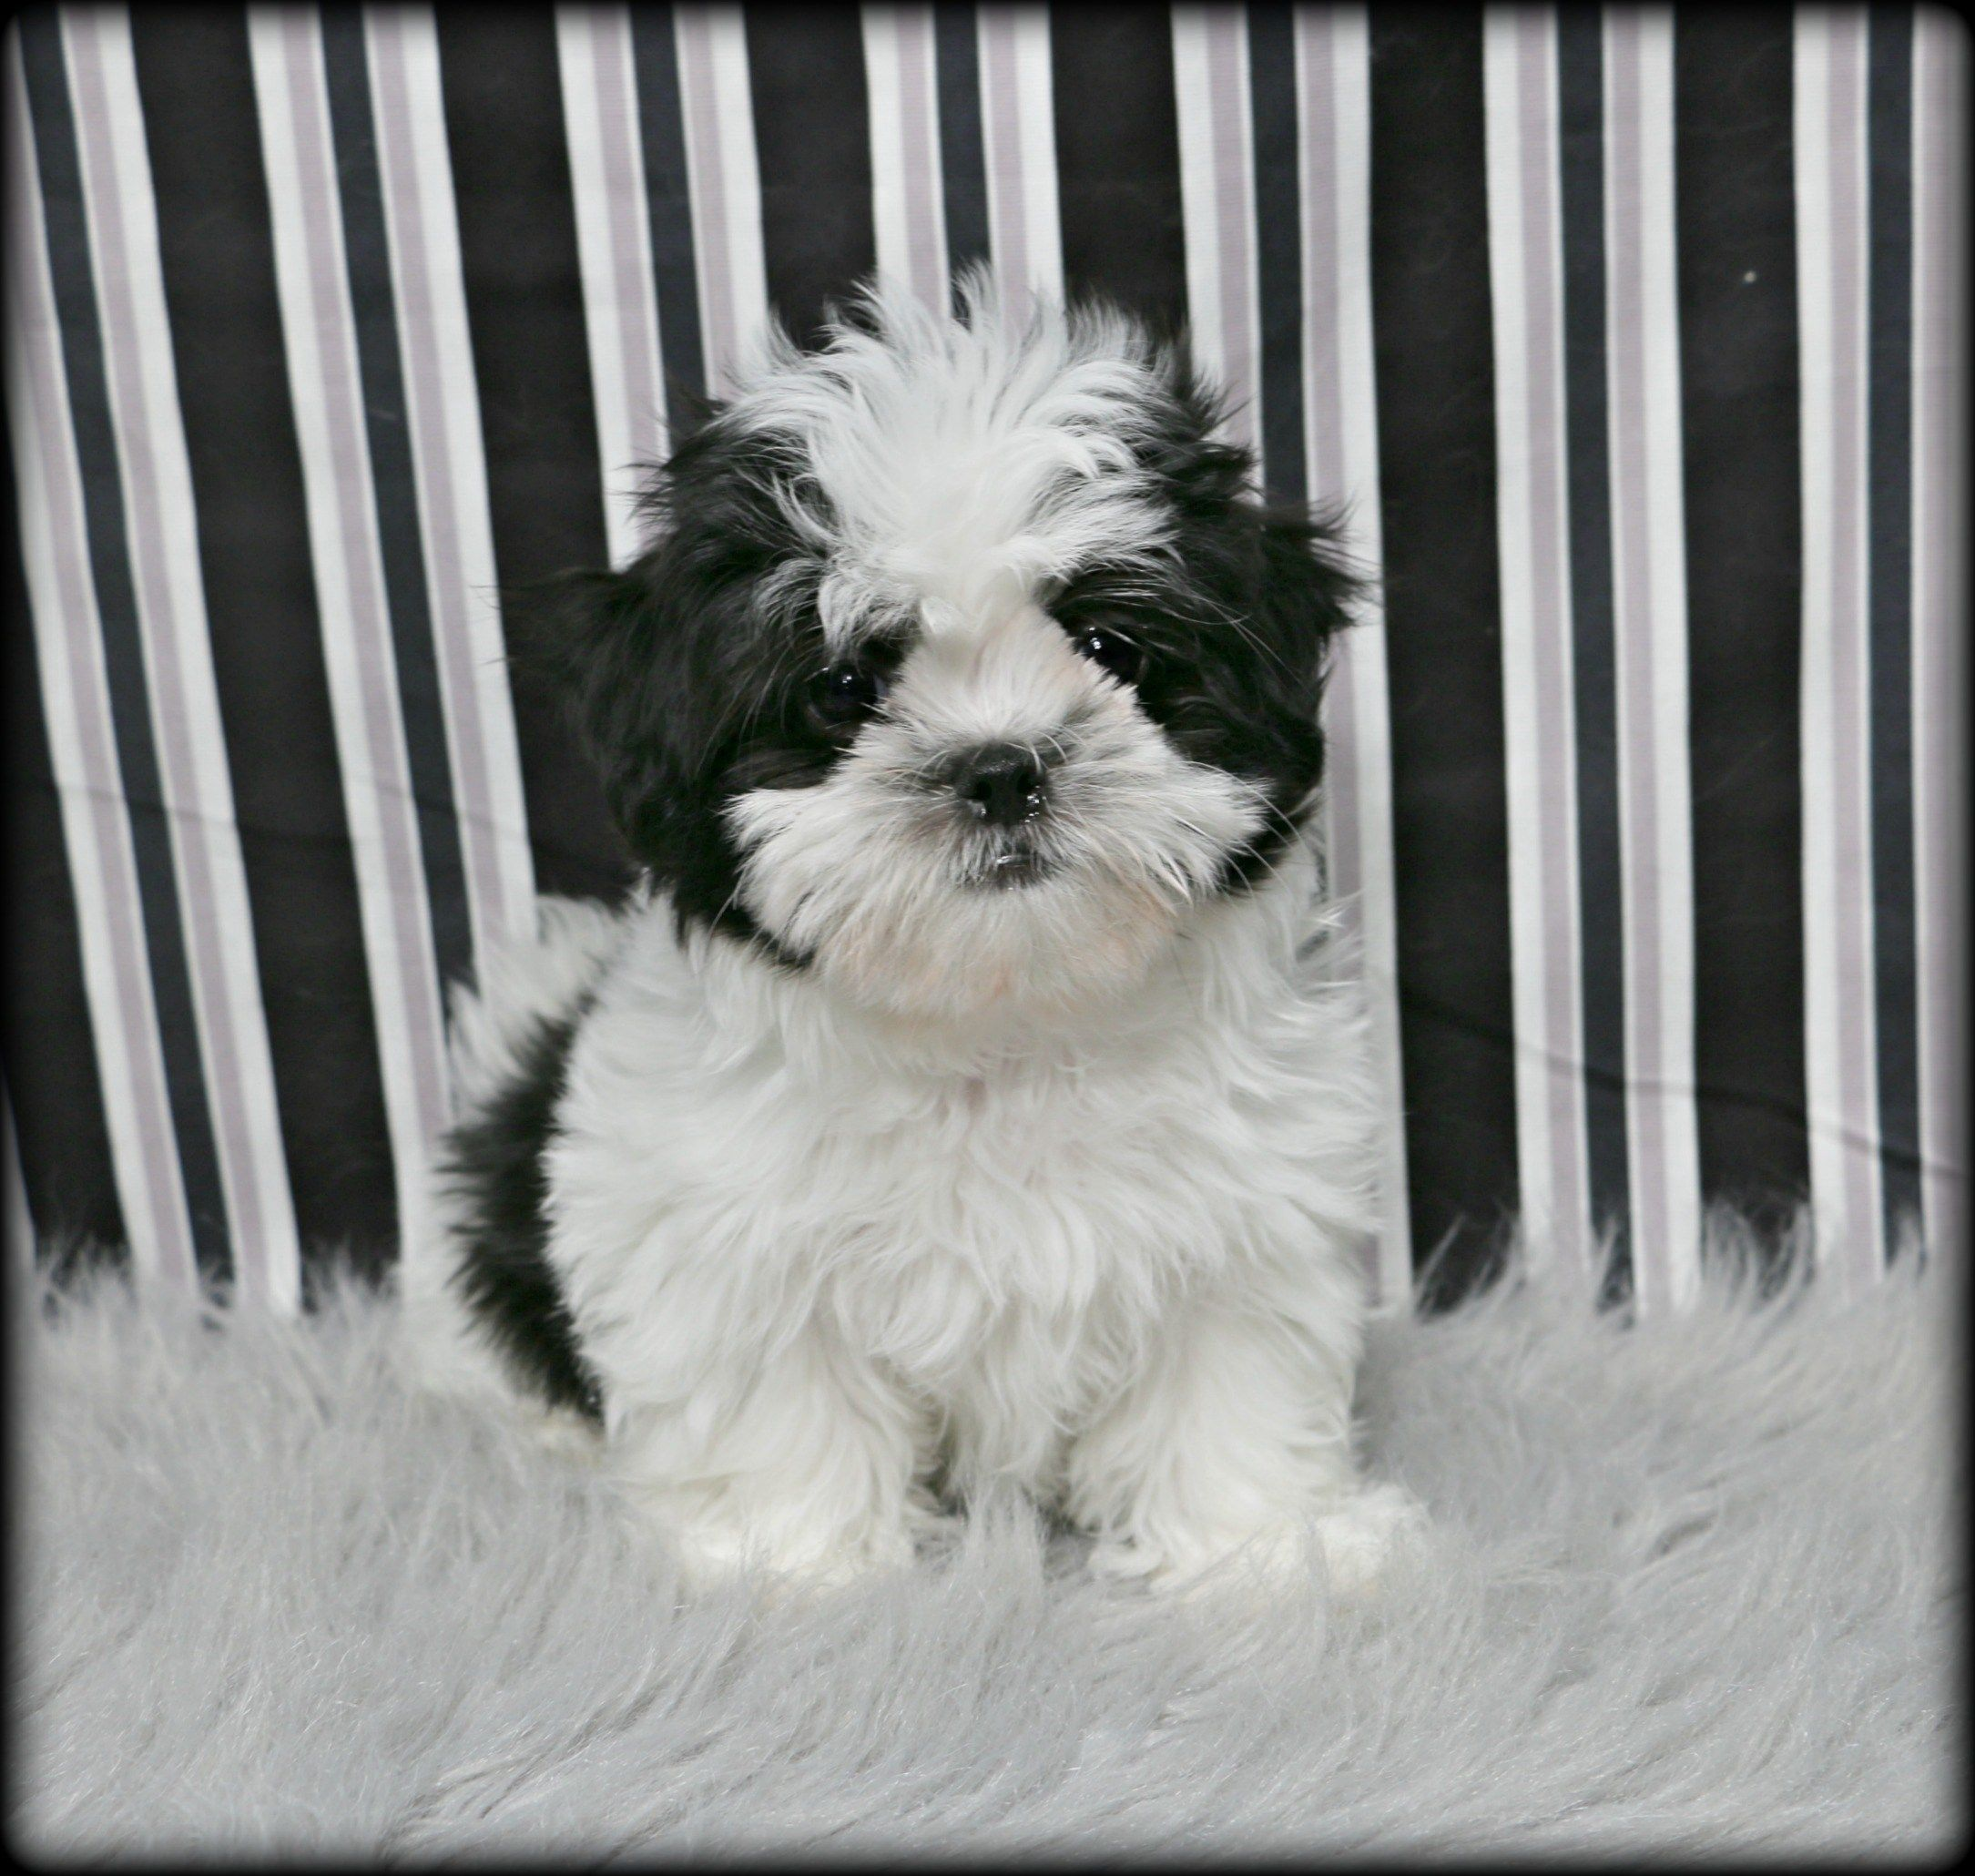 Petland Overland Park Has Maltese Shih Tzu Puppies For Sale Check